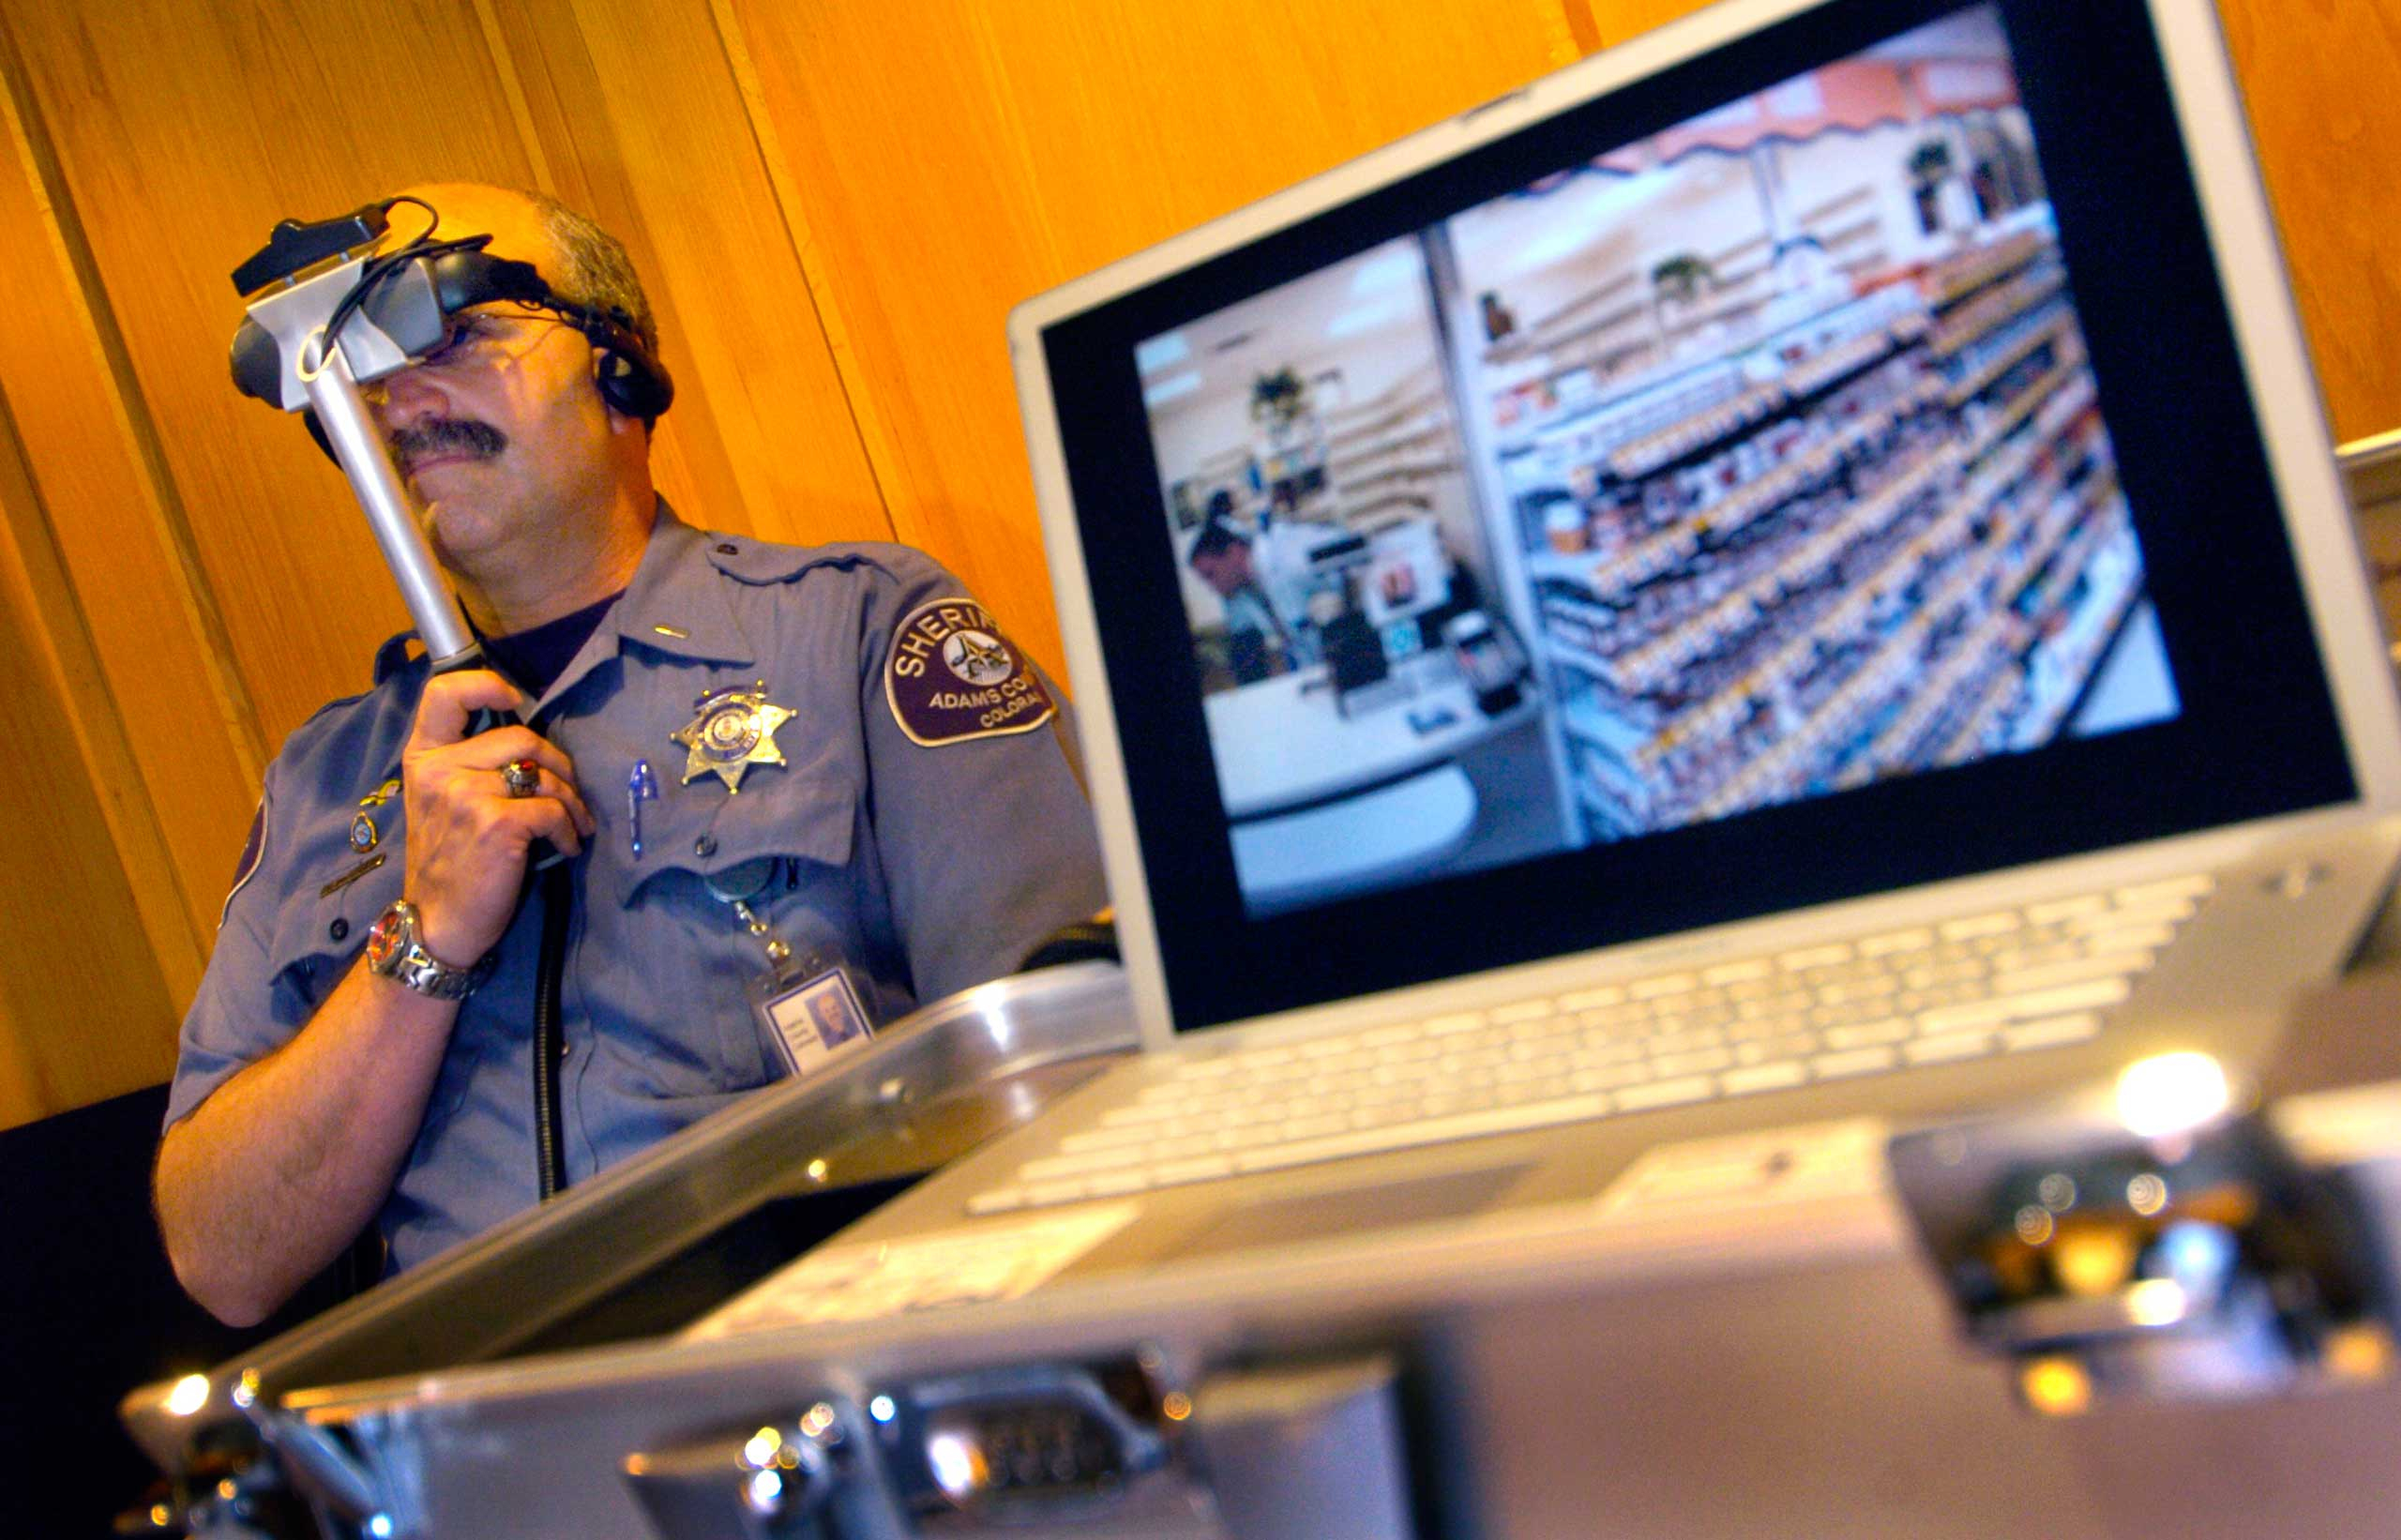 <strong>2006</strong>                                                                      Lt. David Shipley of the Adams County Sheriff's Department watched an interactive video that replicated the experiences of a schizophrenic patient having auditory and visual hallucinations while attempting to refill a prescription at a pharmacy.